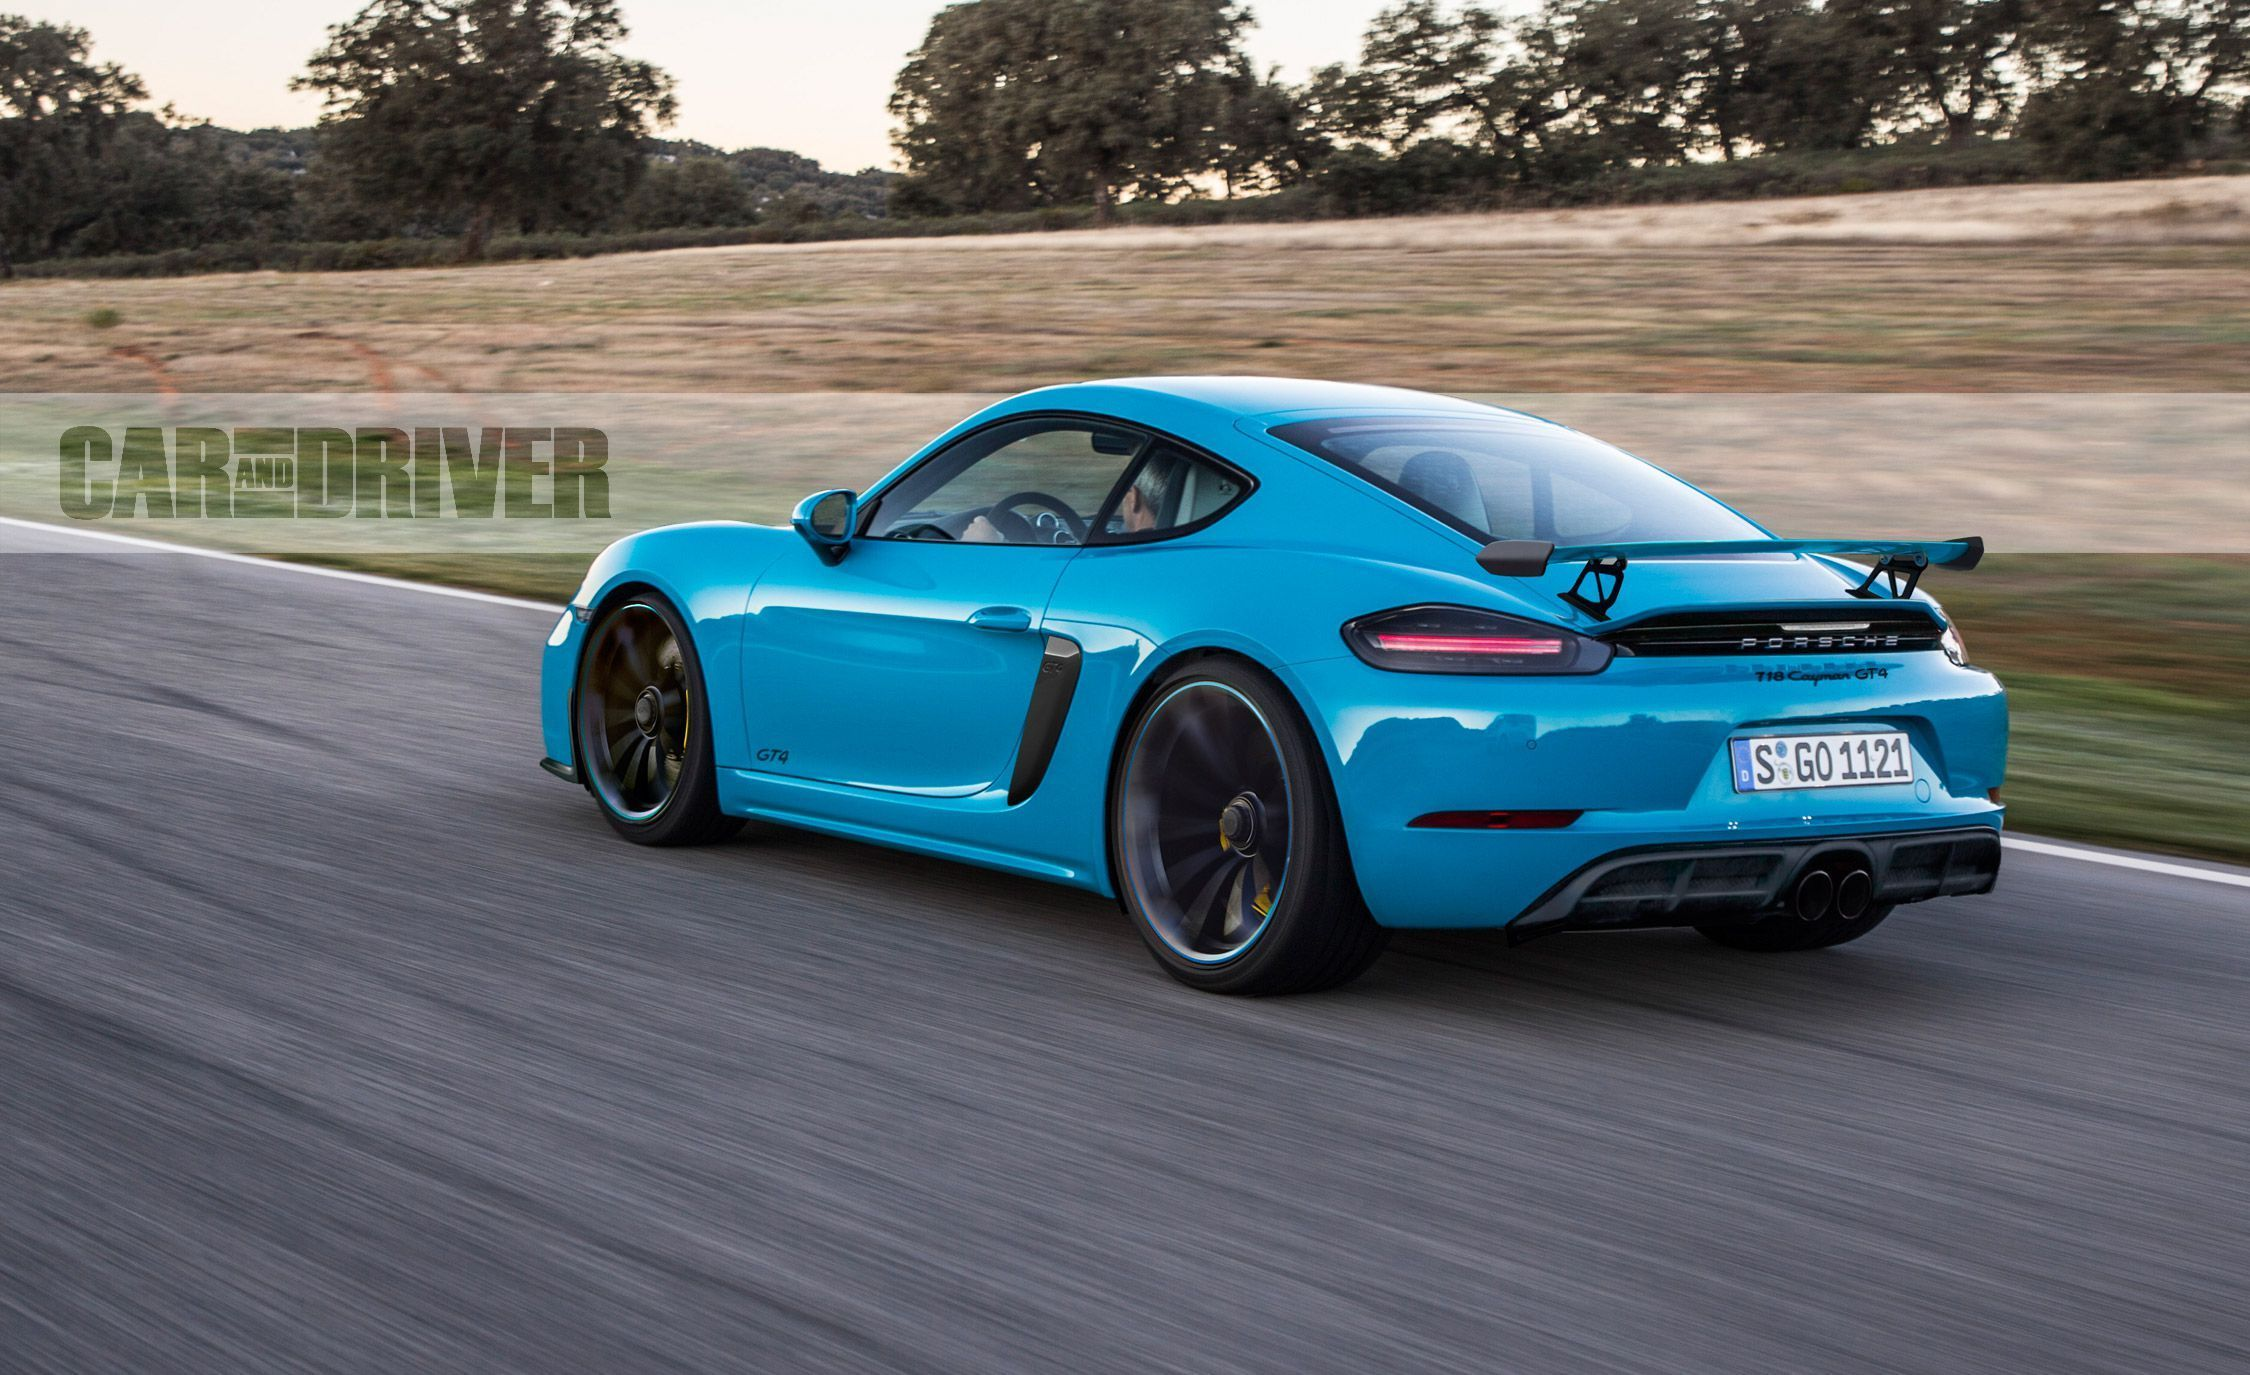 The 2019 Porsche Cayman First Drive New Car Review